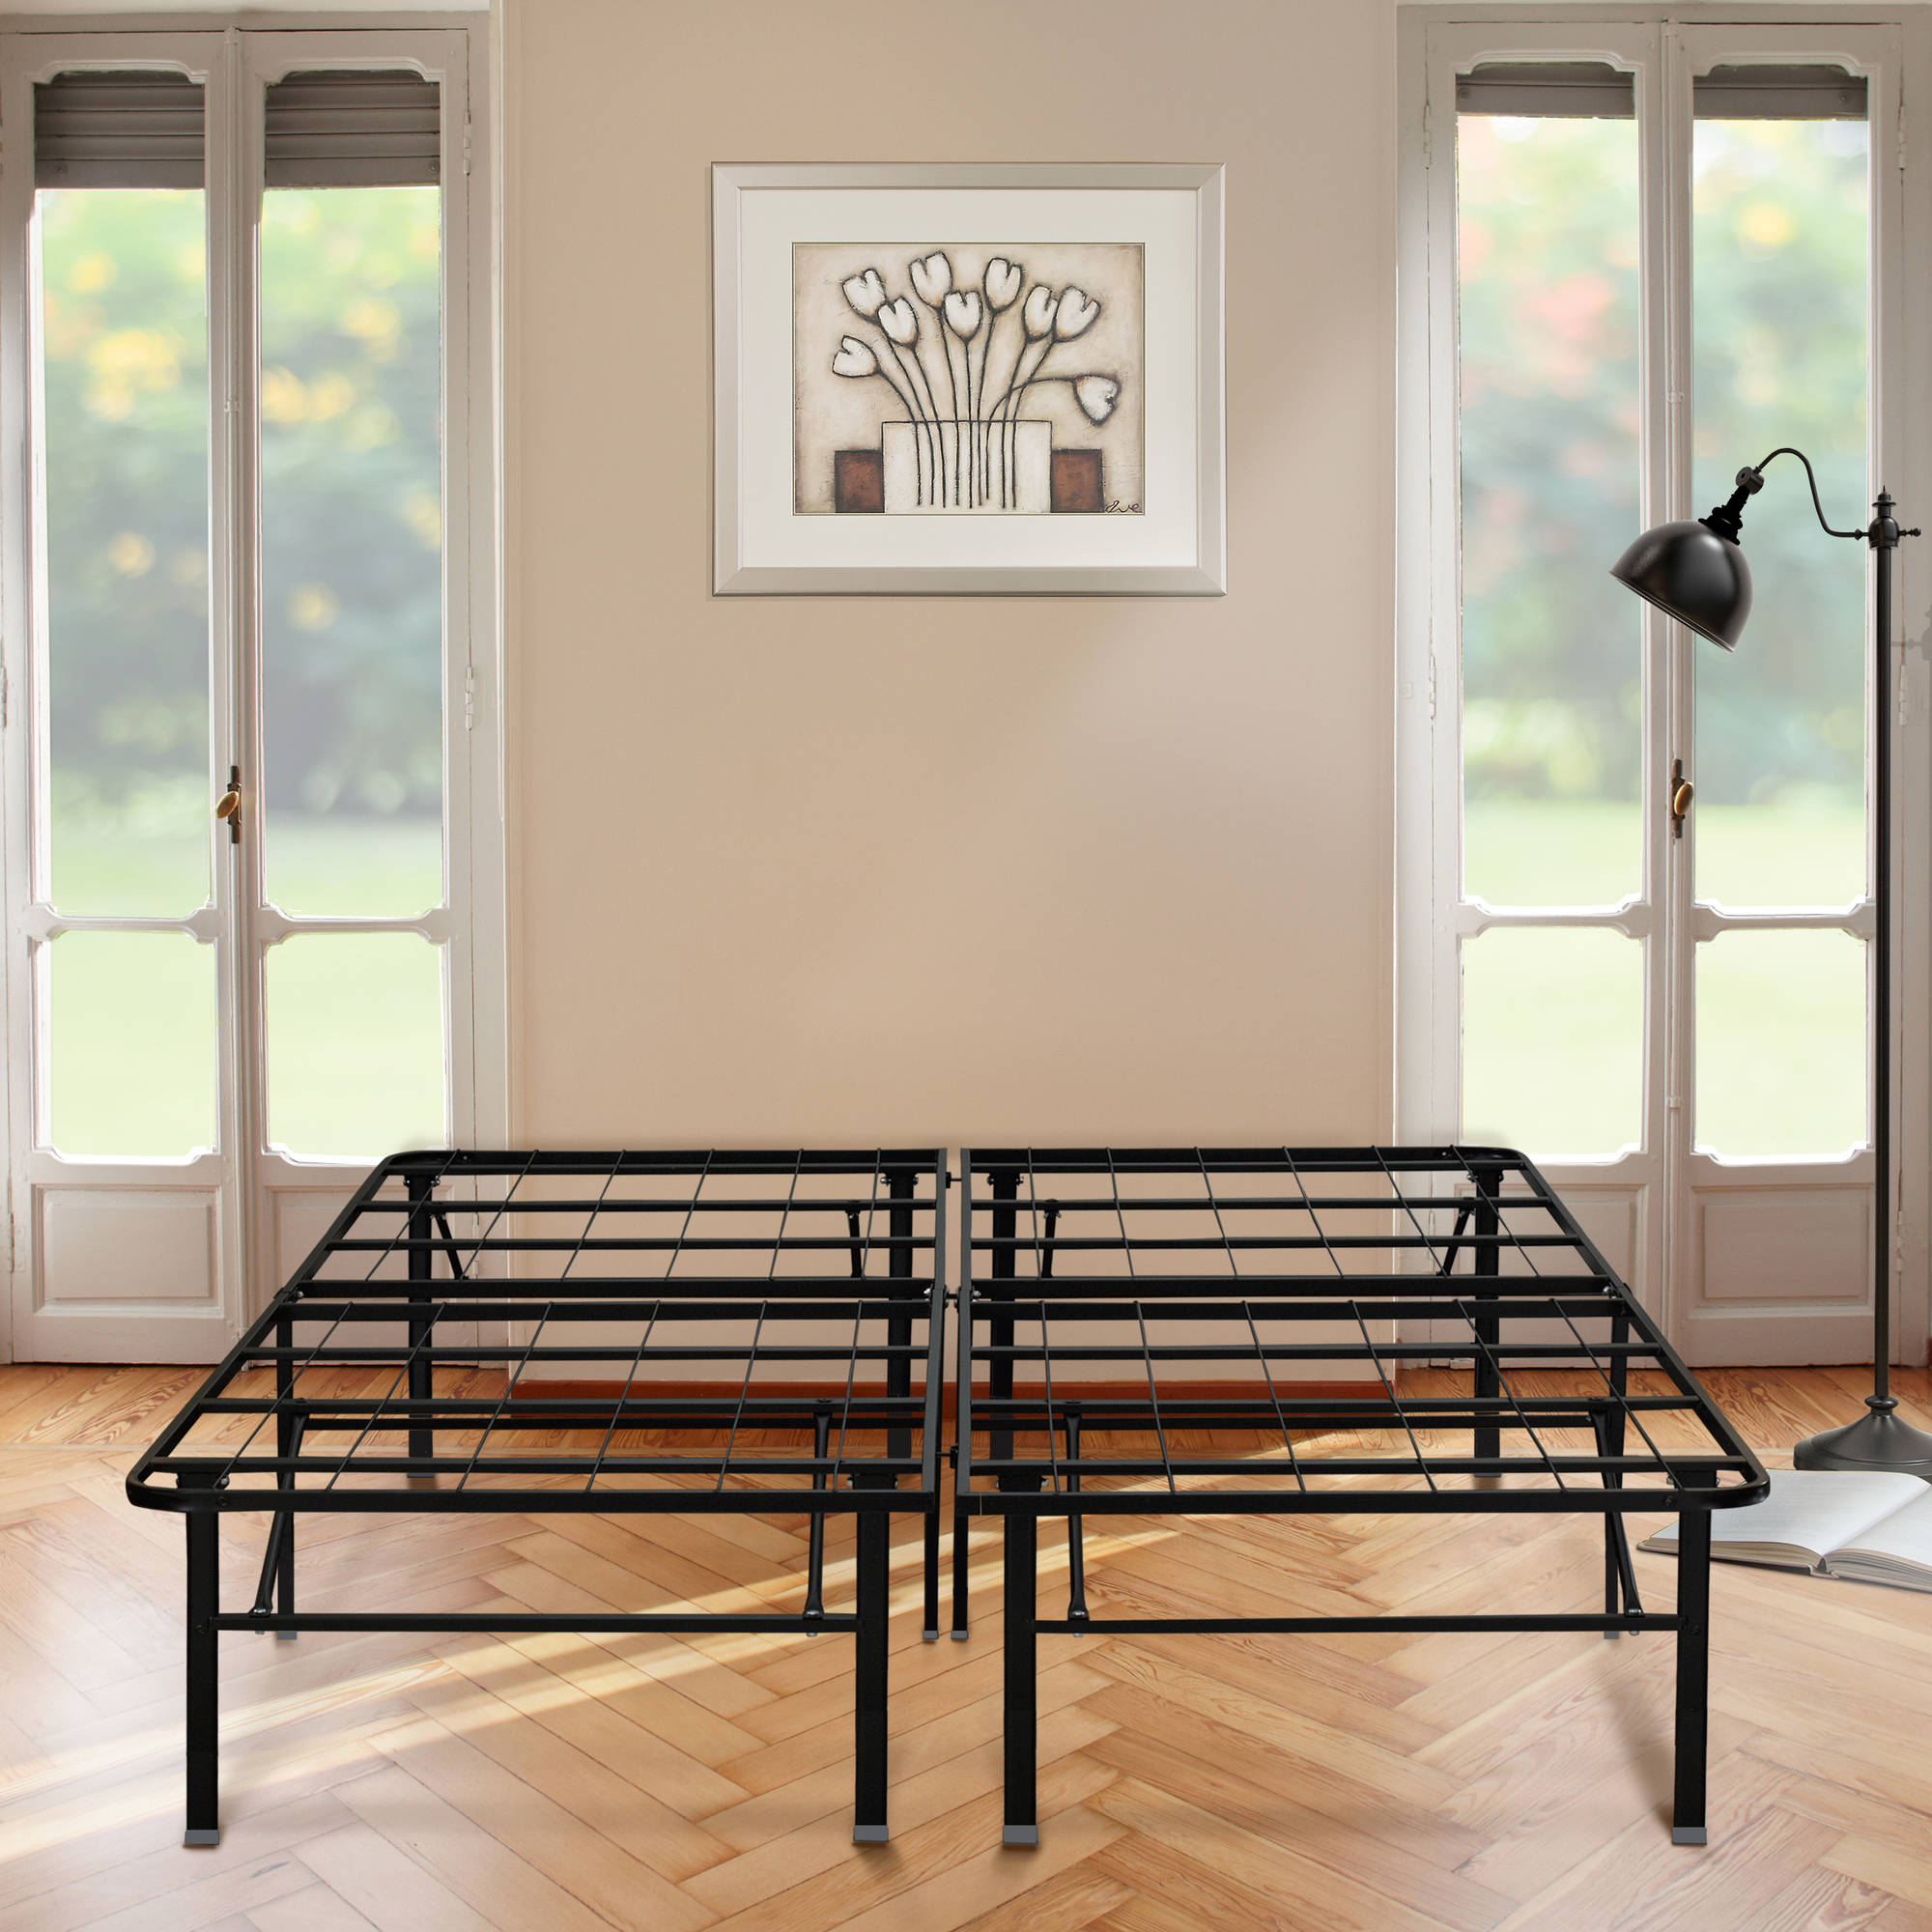 frames fresh what dimensions width is metal frame victorian king for mattress costco and bellwood cal tribecca awesome cot best iron on of wood california double super ikea lowes beds queen with full platform headboard home twin bed size choice sale single canopy by